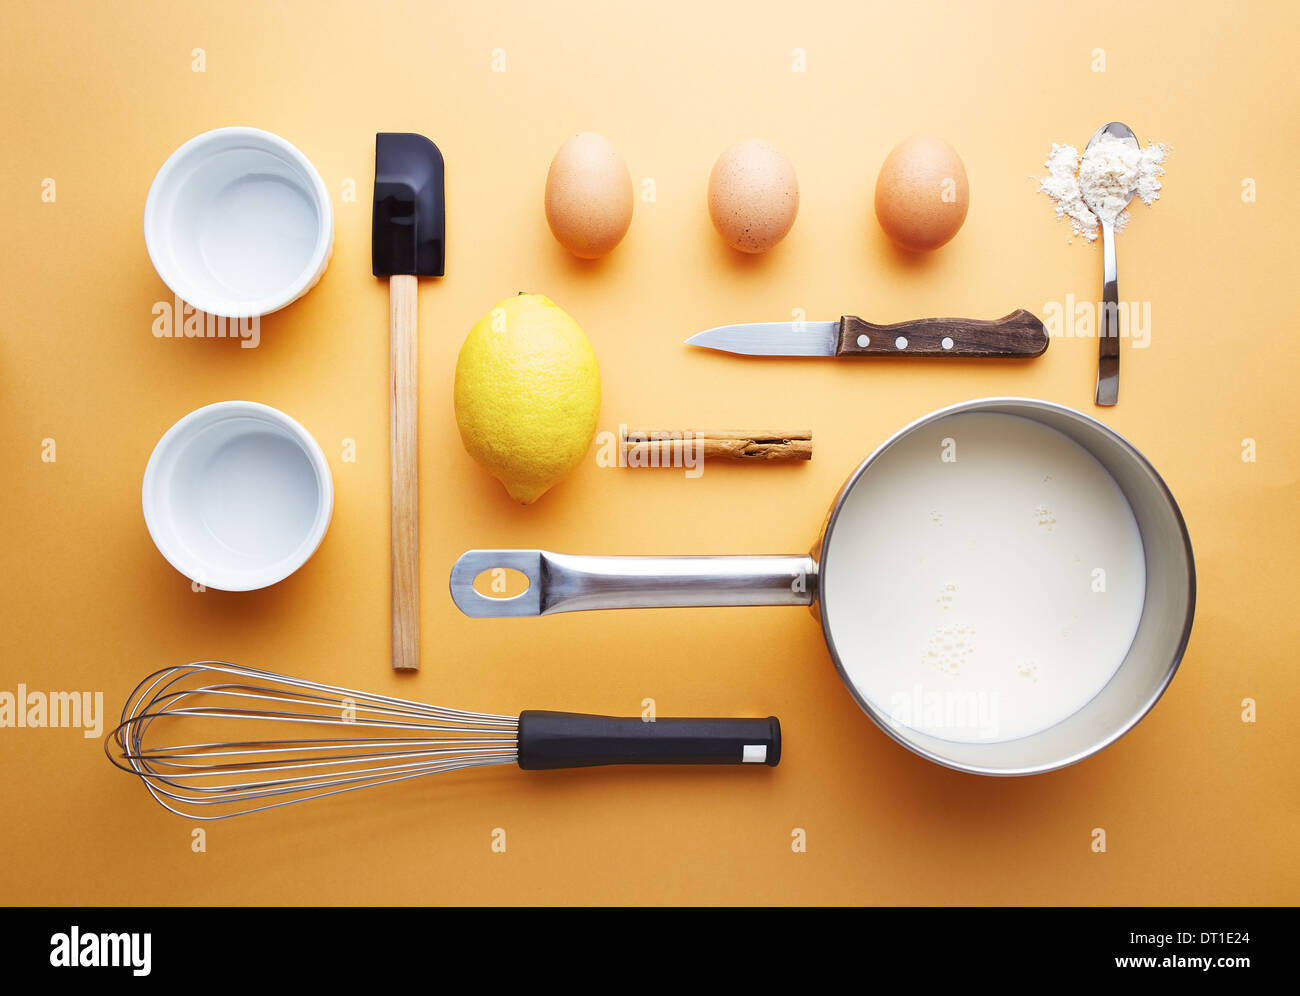 Creme brulee ingredients on yellow background unusual presentation - Stock Image